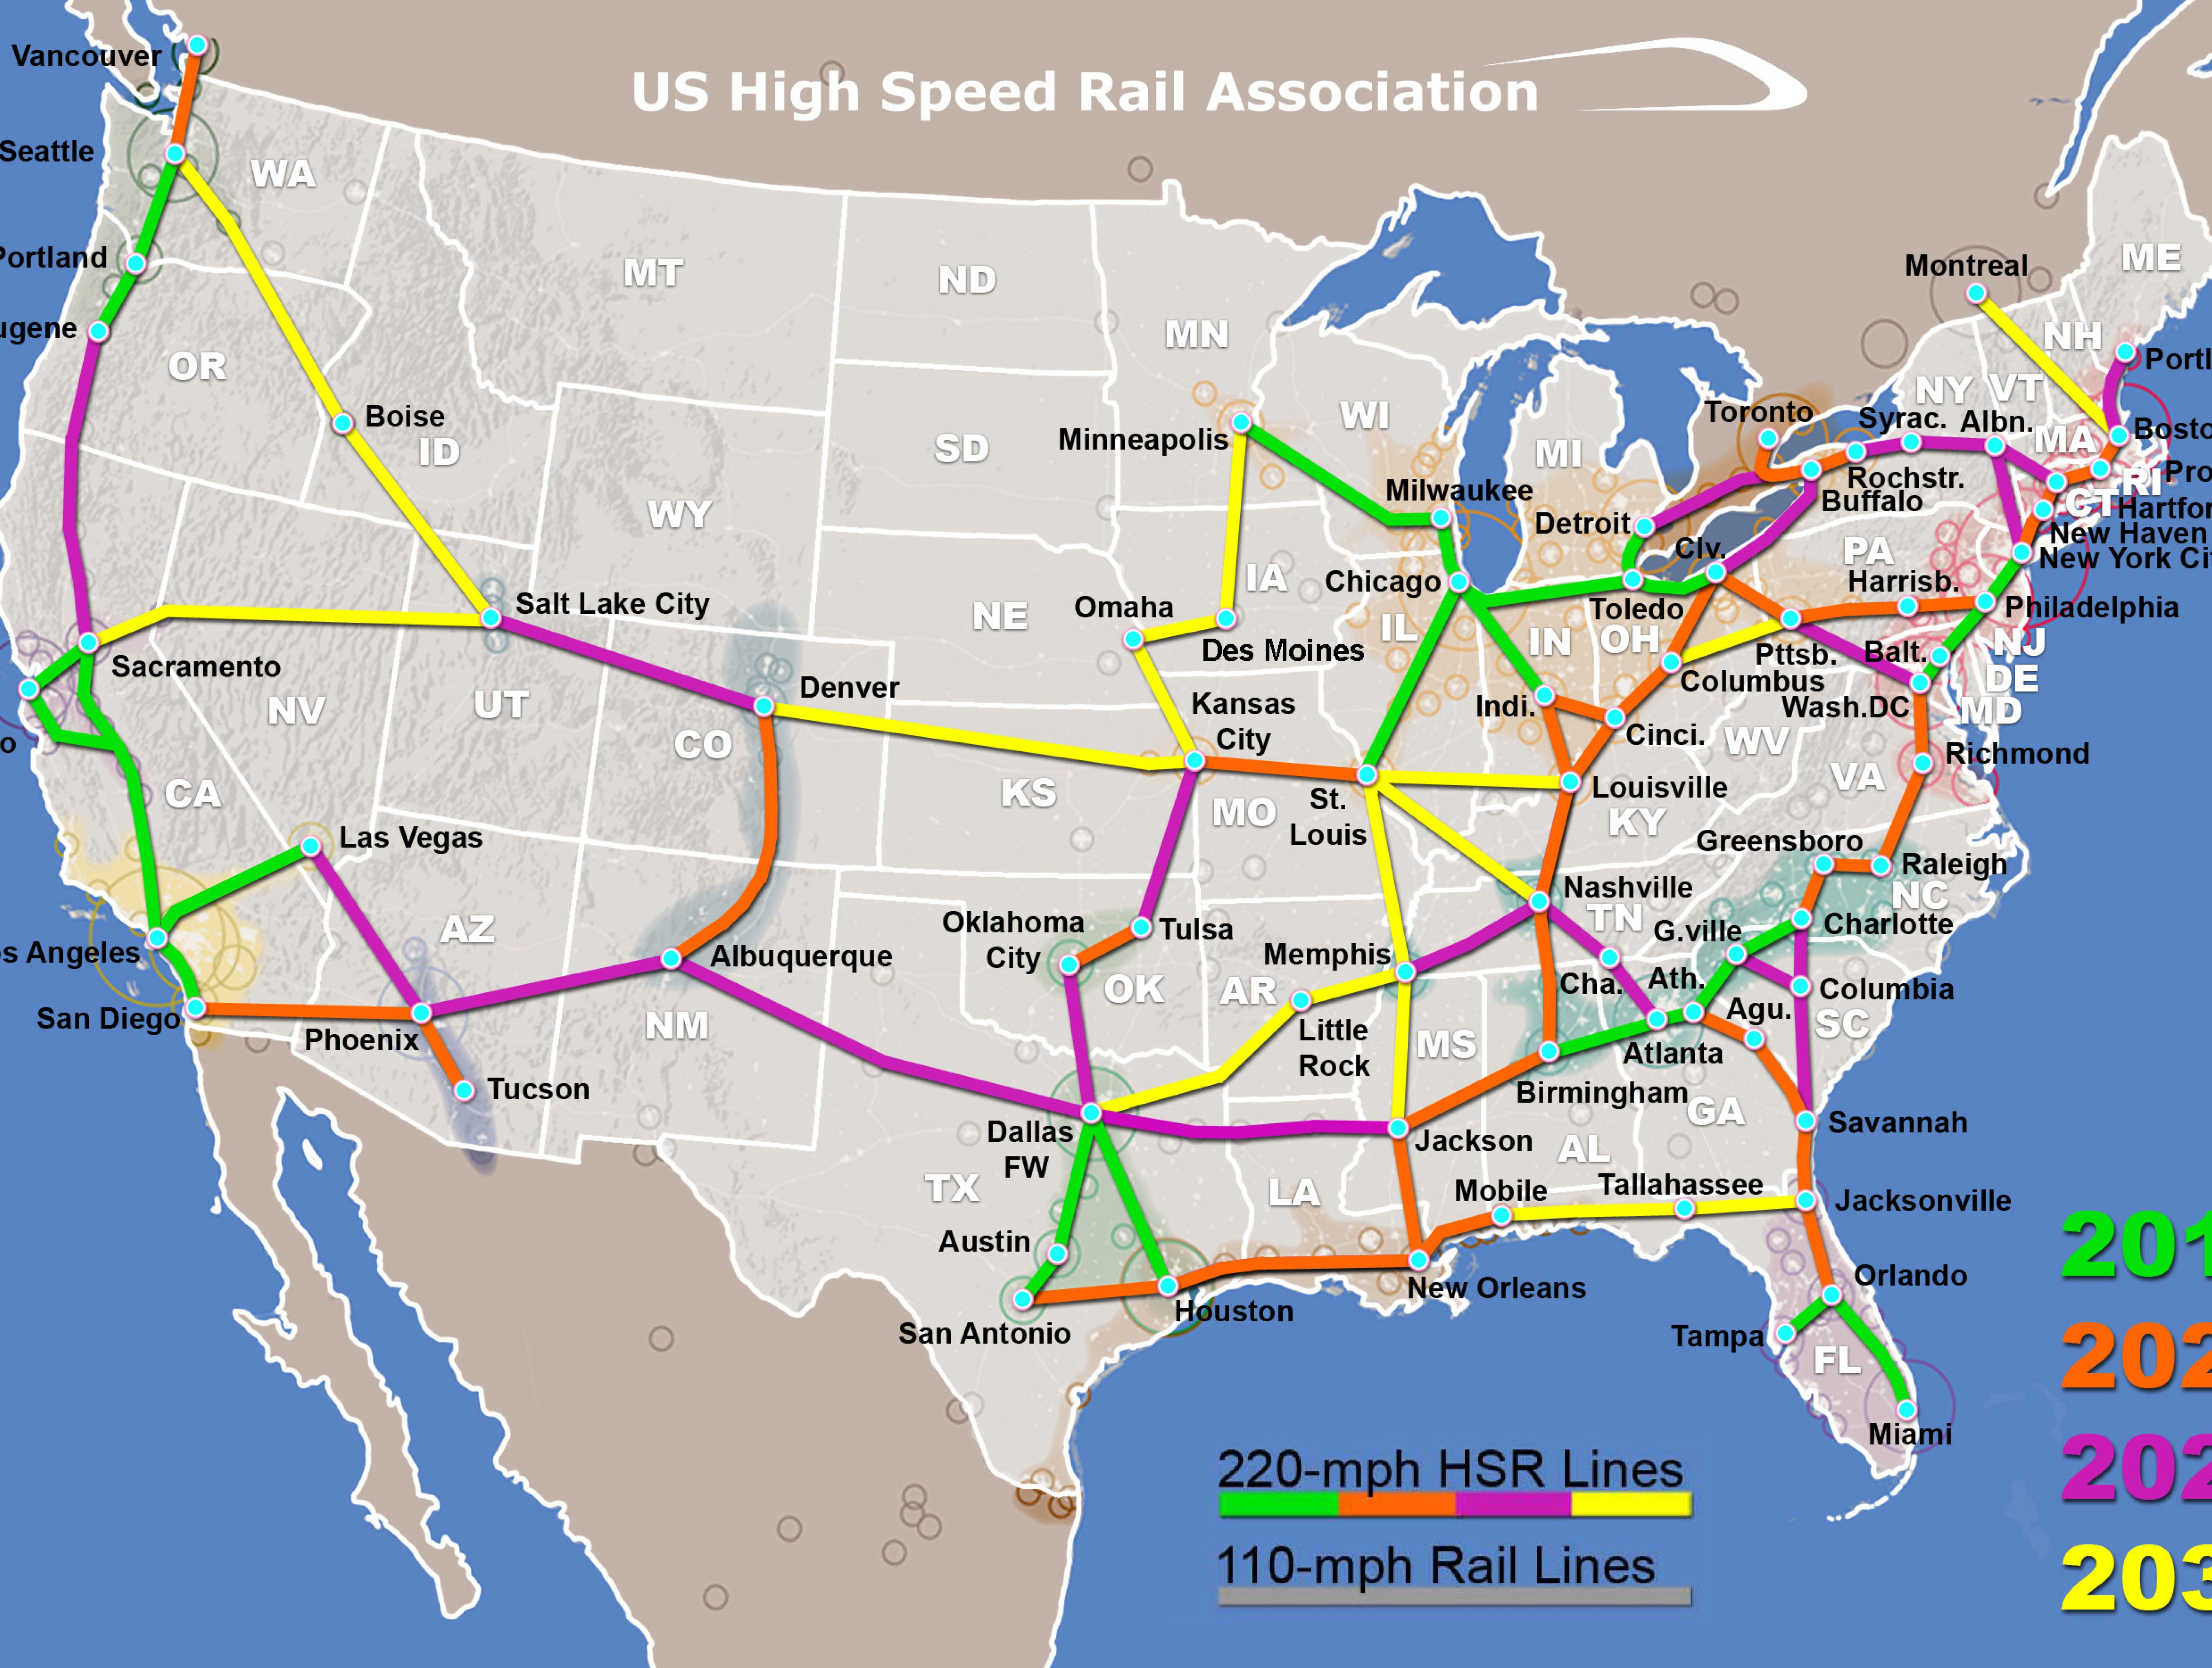 Low prospects for high-speed rail in Tallahassee?